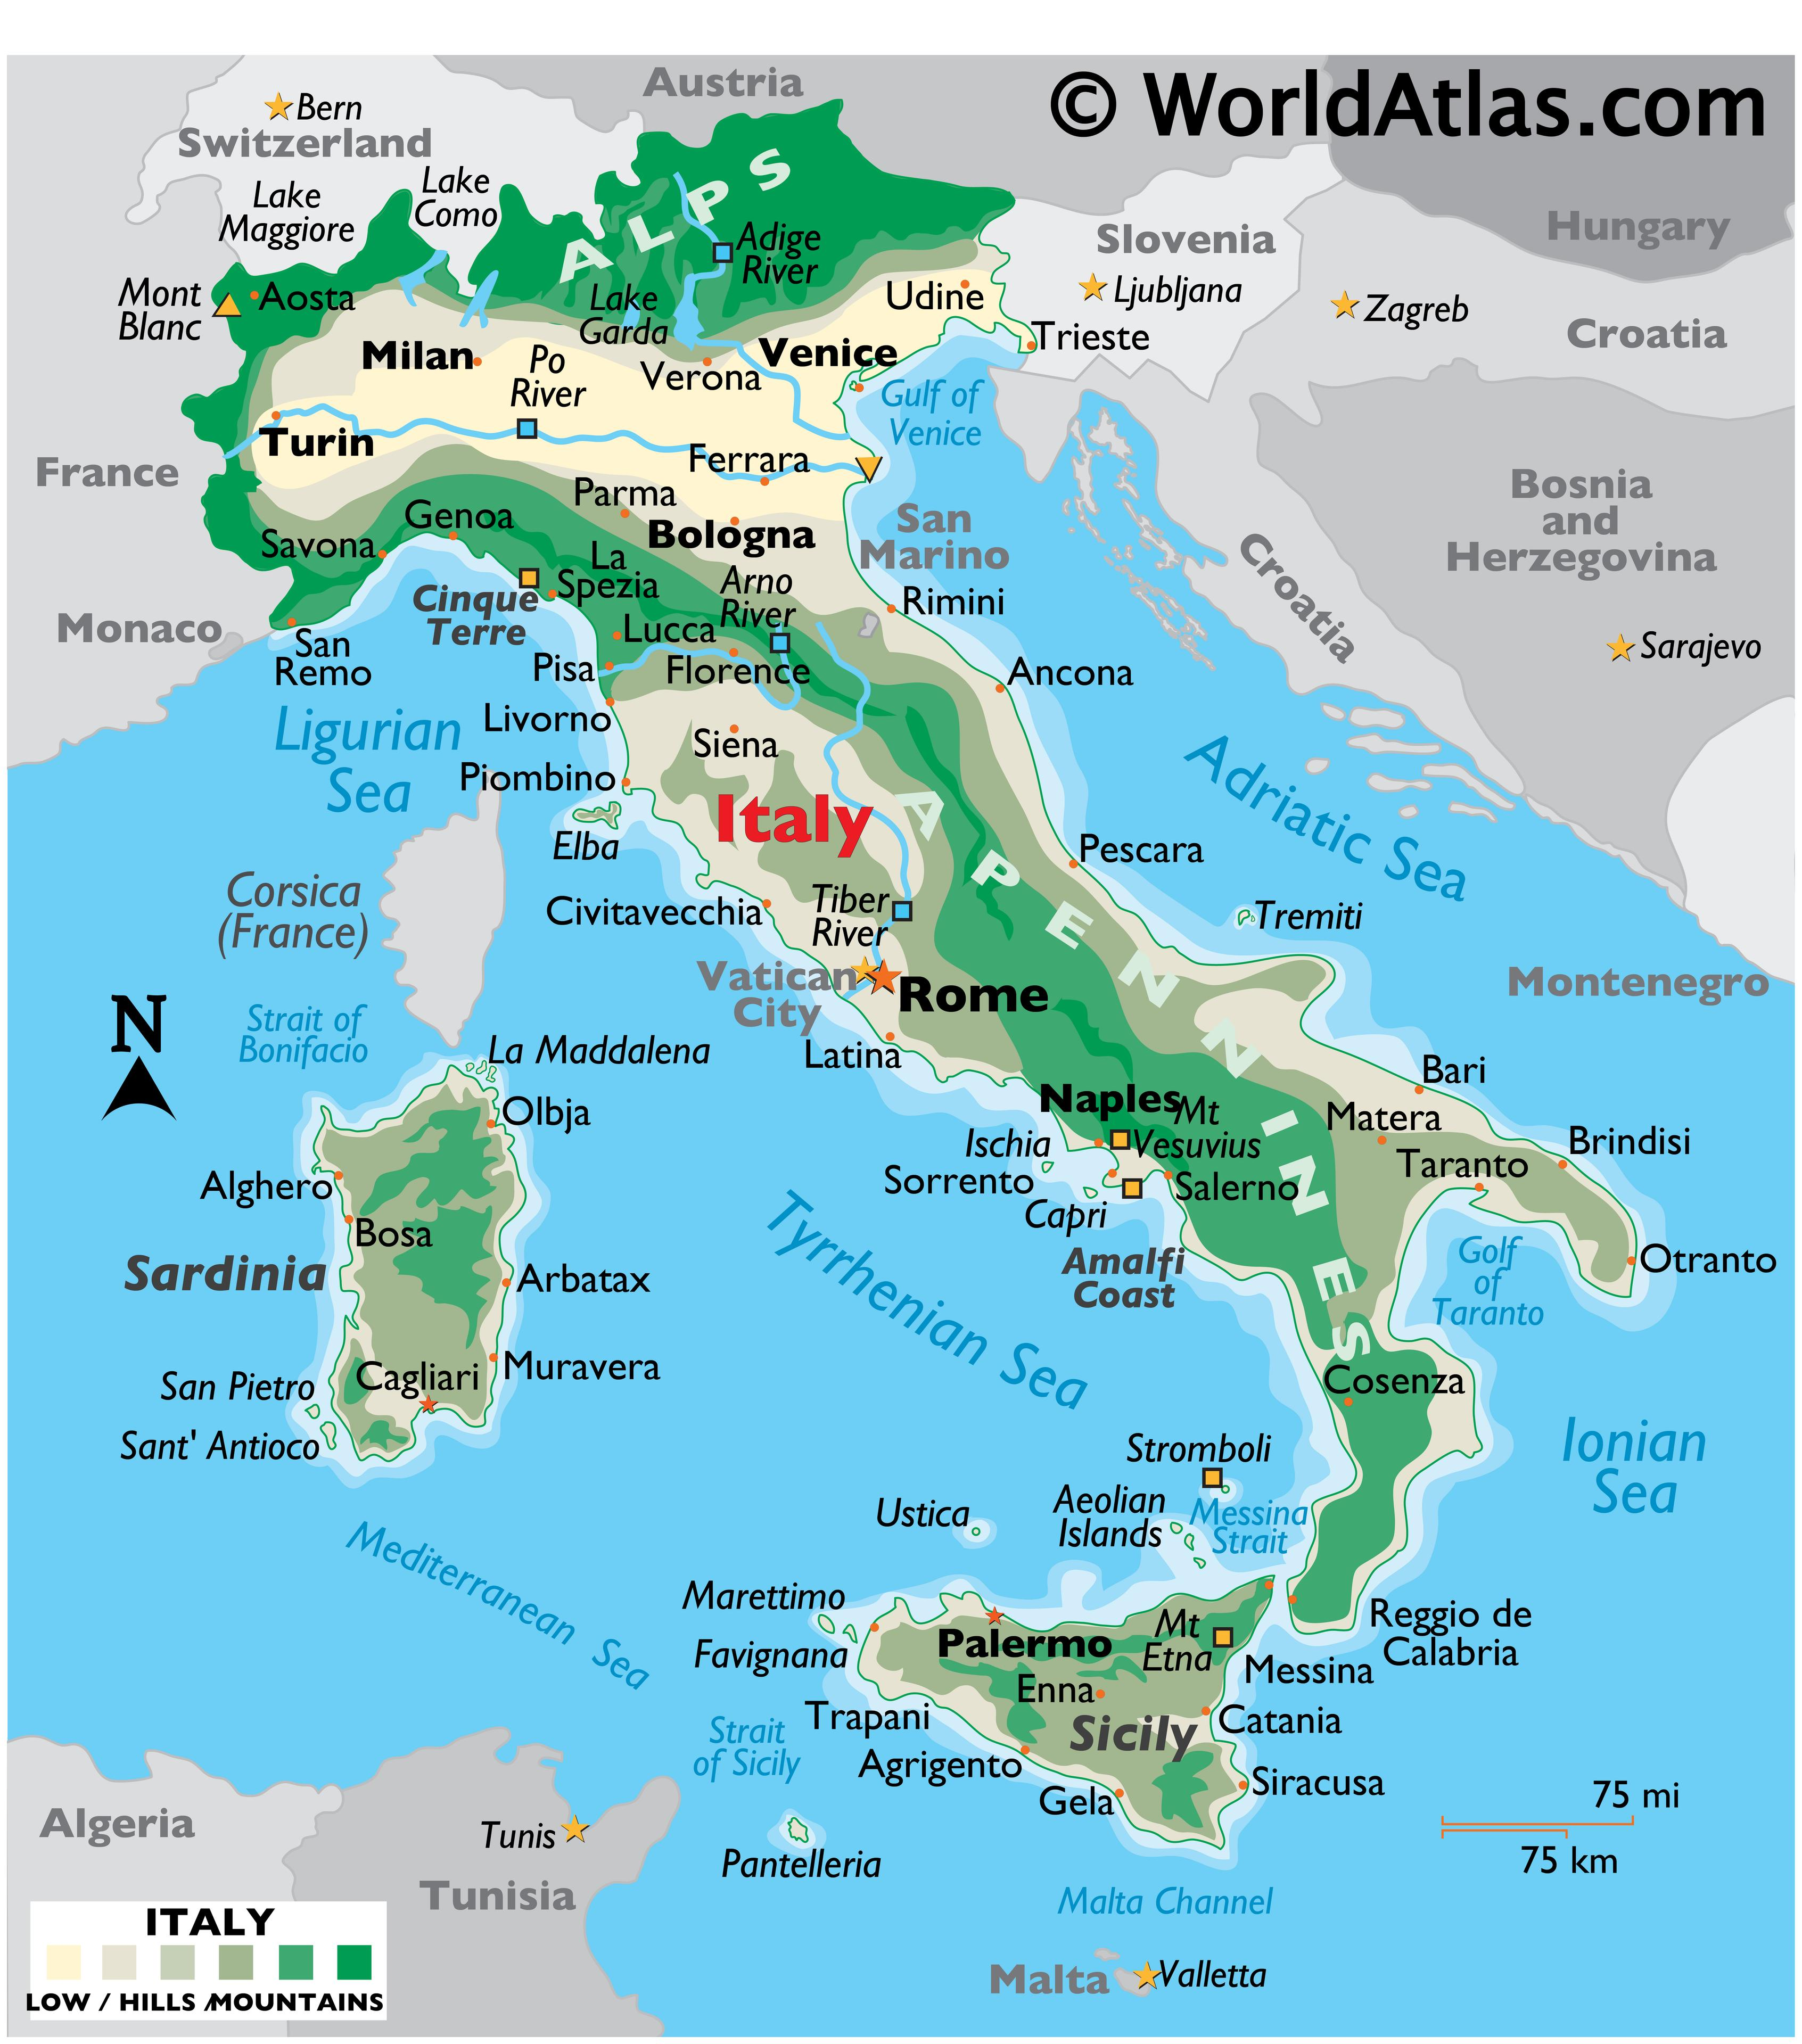 Physical Map of Italy showing terrain, mountains, extreme points, islands, rivers, major cities, international boundaries, etc.